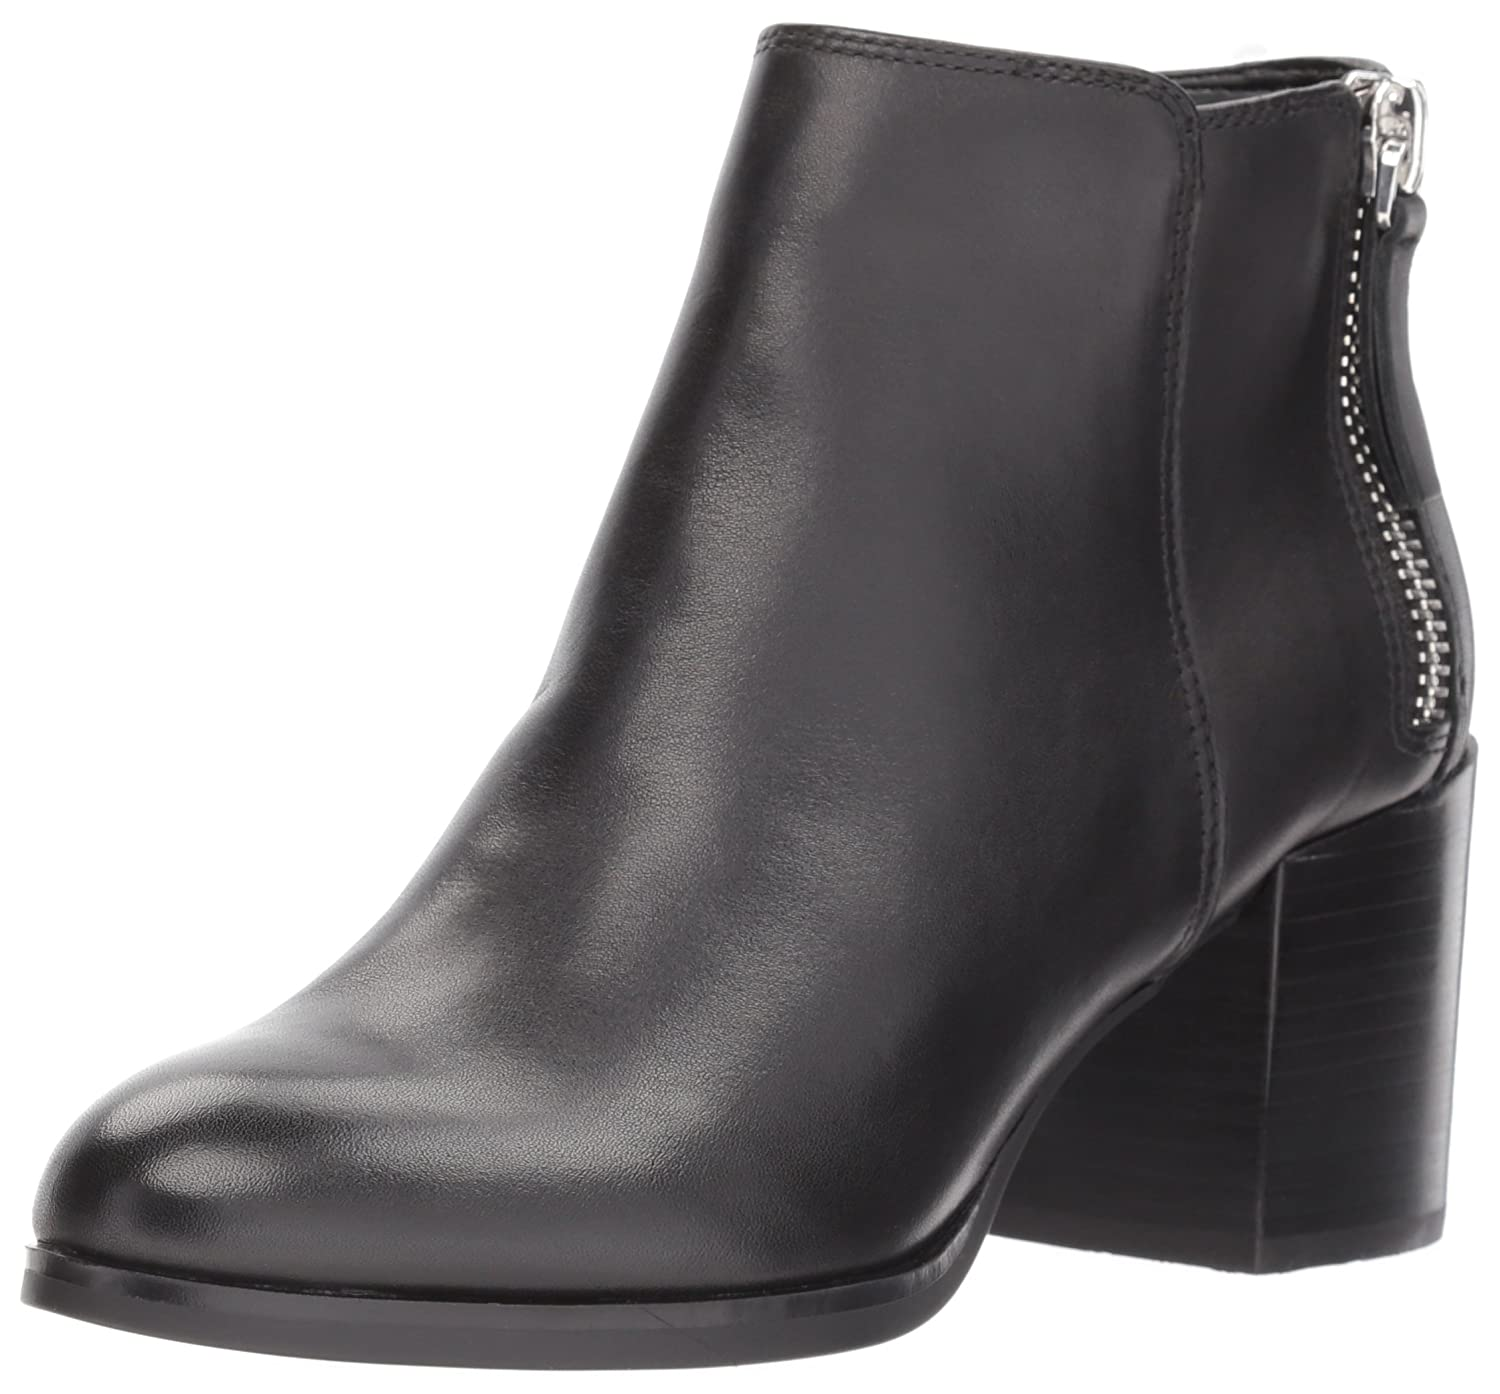 ALDO Women's Kelii Ankle Bootie B0743SRB7T 6.5 B(M) US|Black Leather